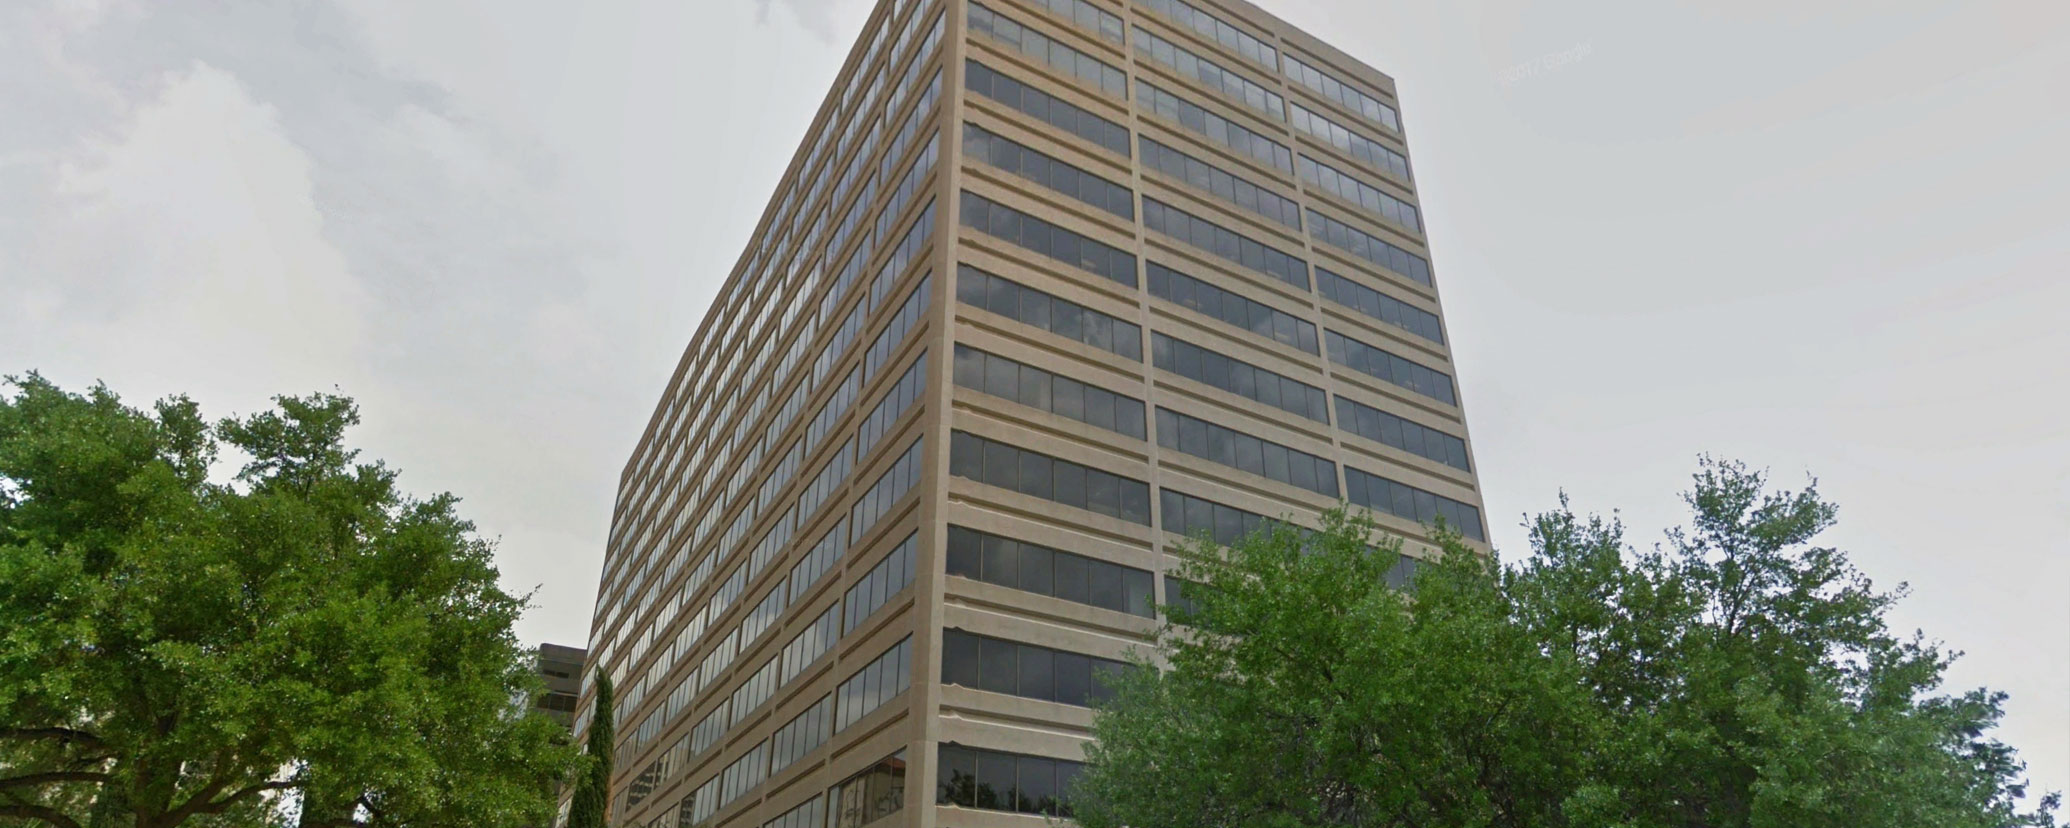 Caddell Construction Project- Office Tower & Parking Deck at Las Colinas Urban Center